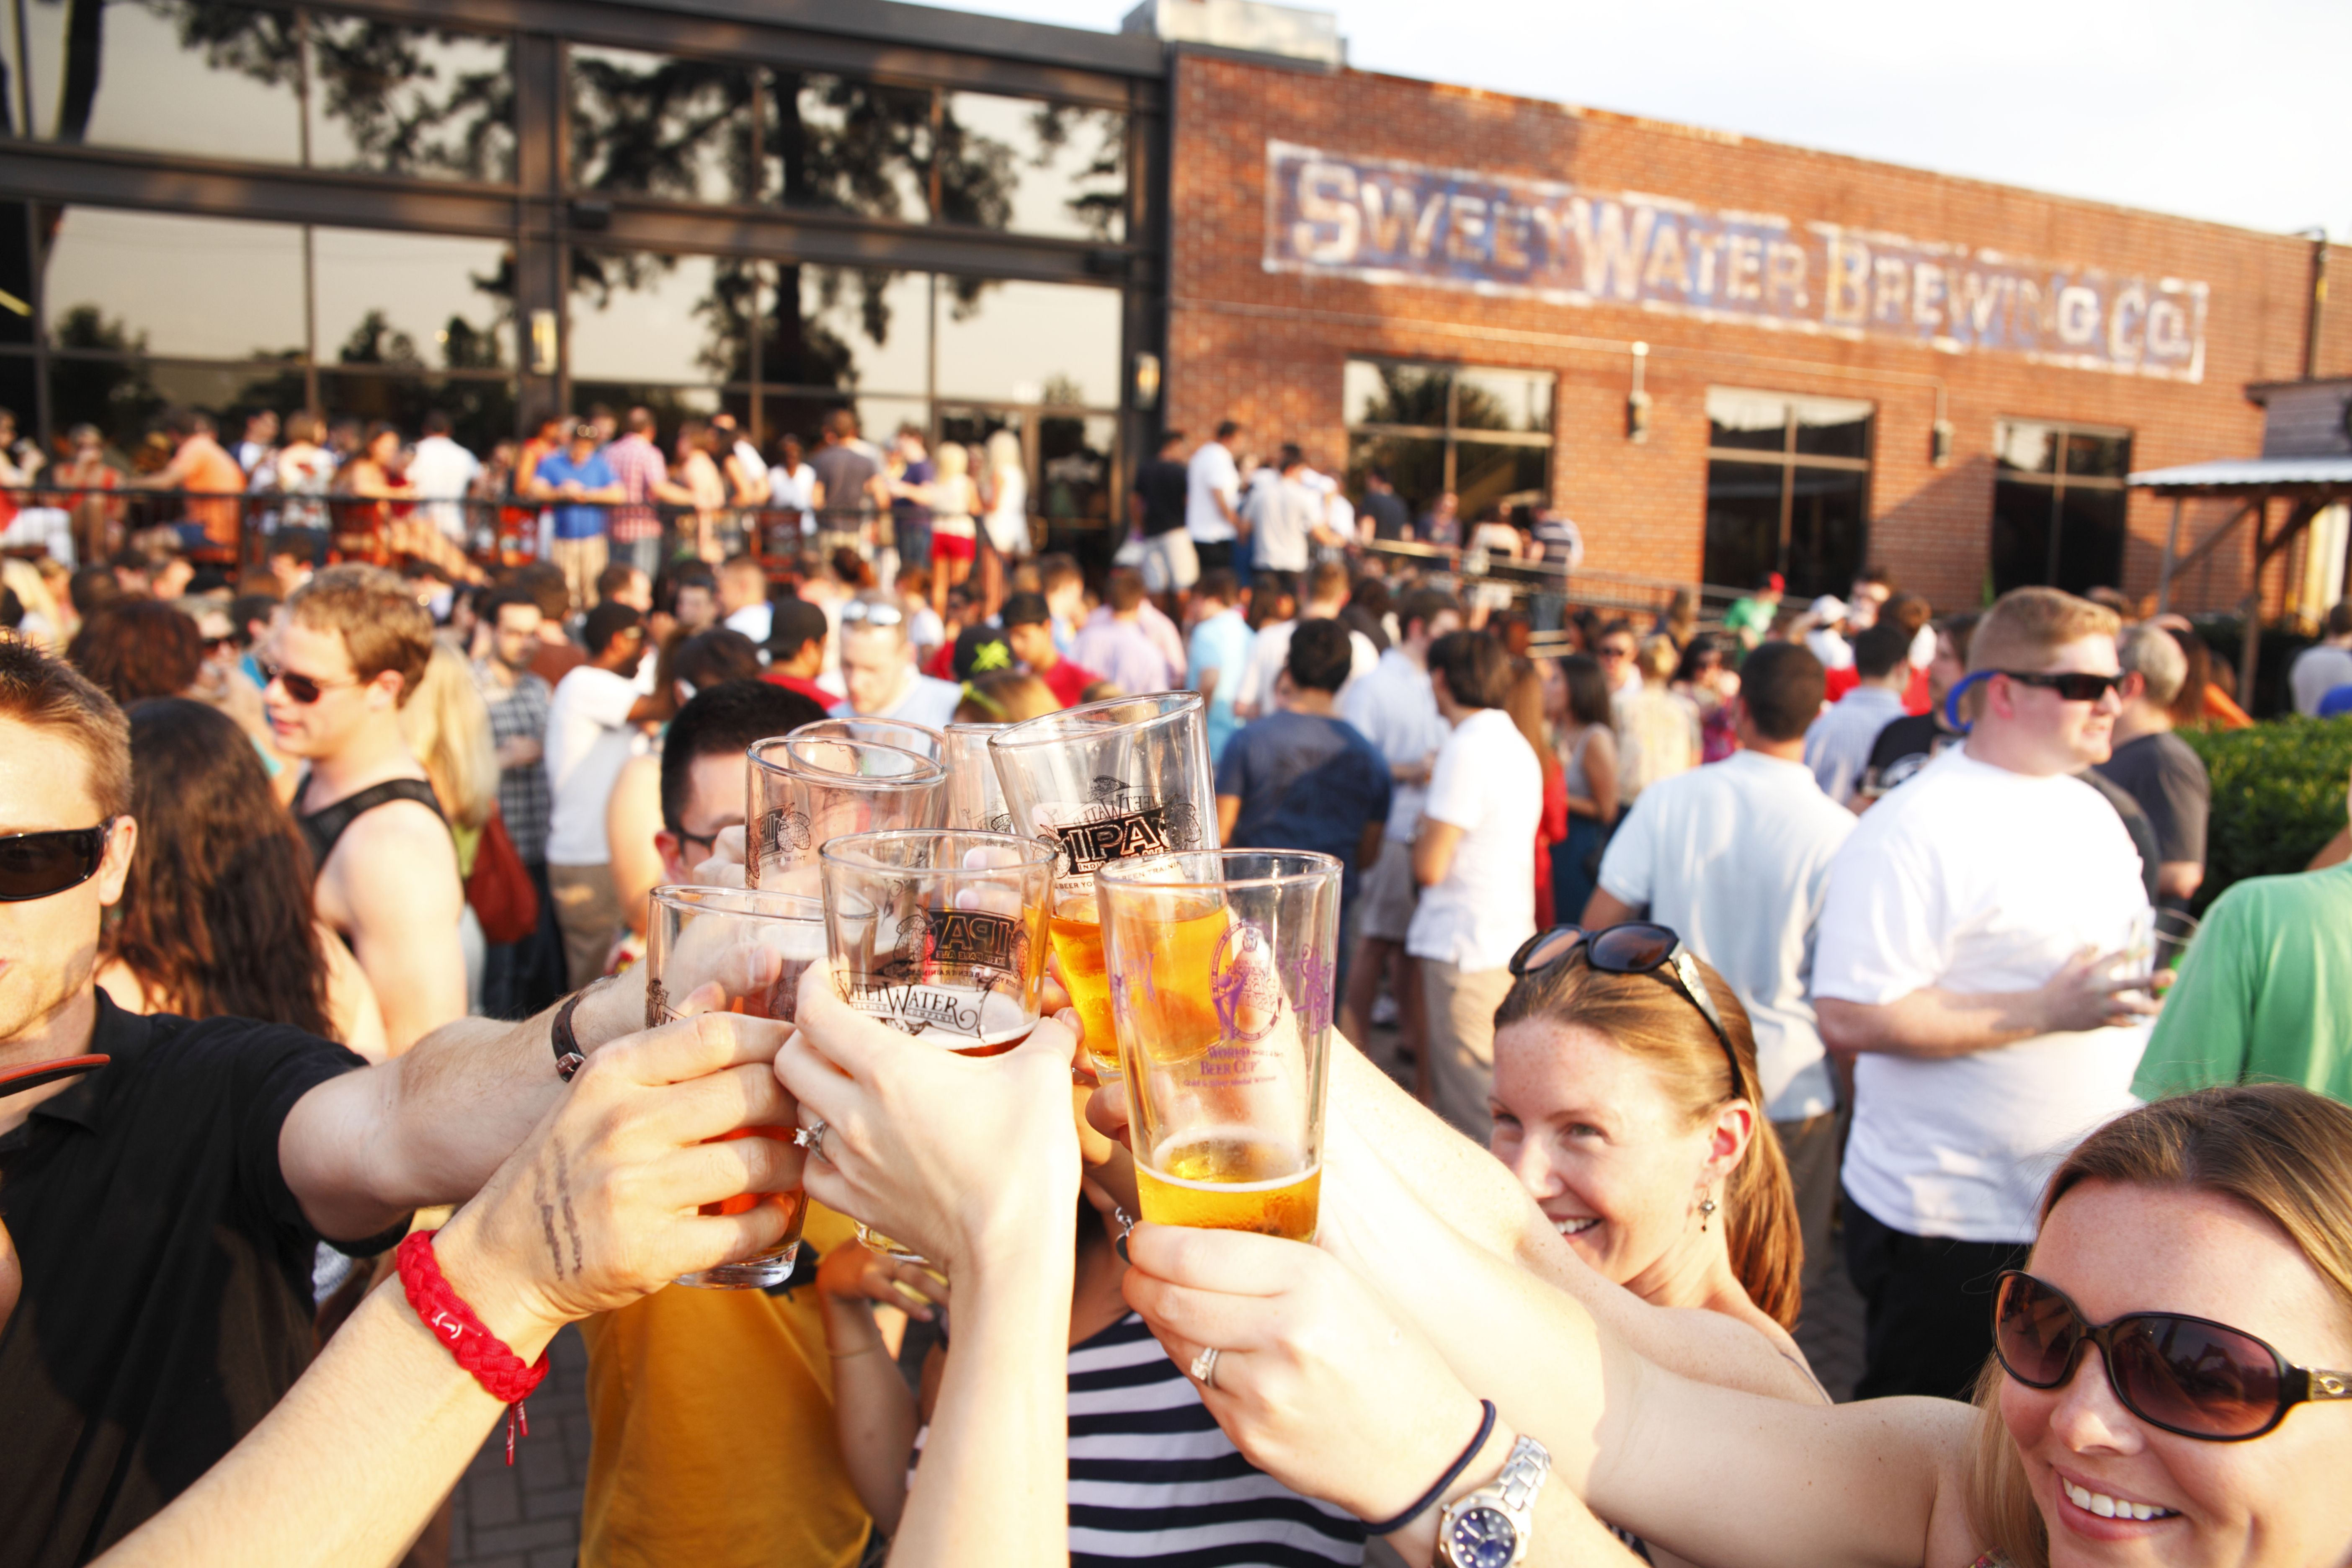 Visitors toast beers outside the SweetWater Brewing Company